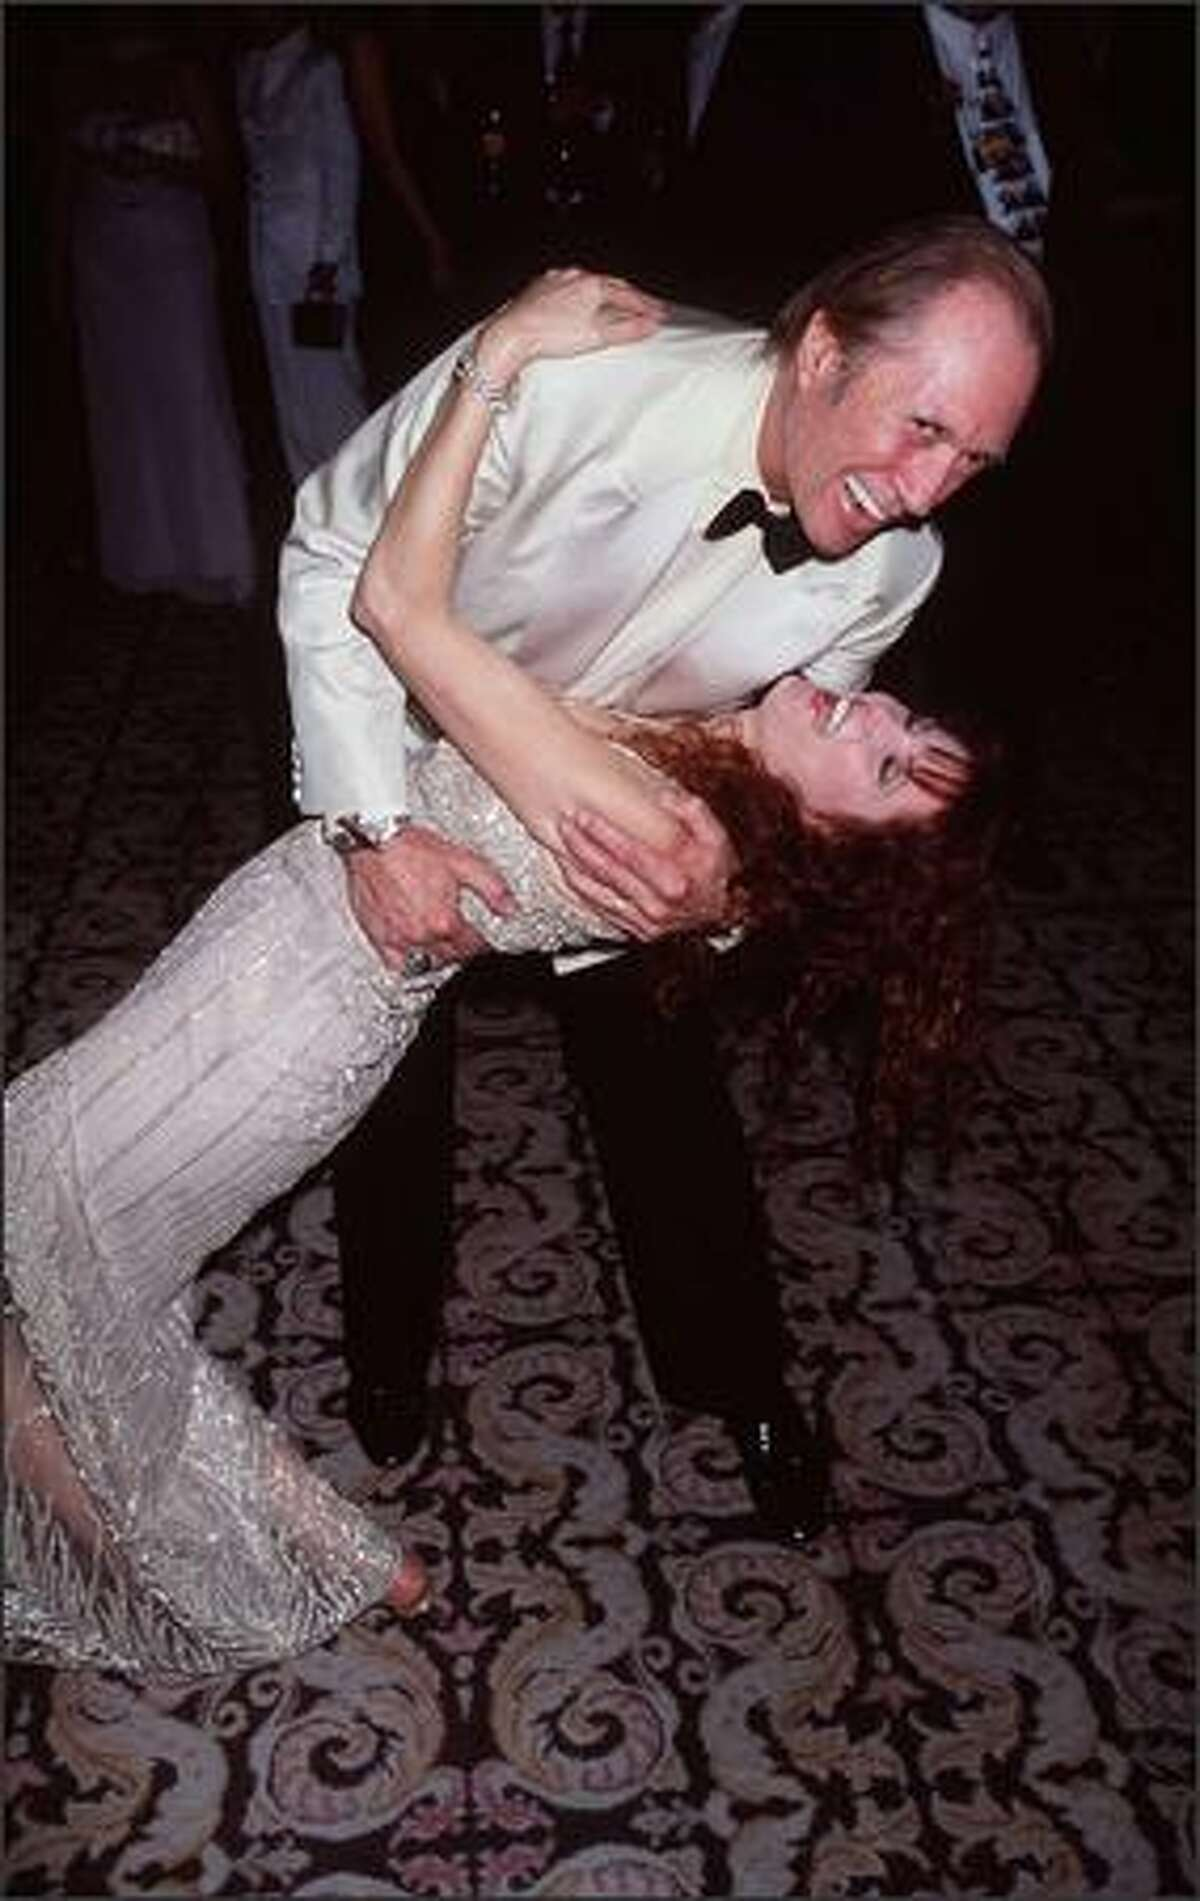 """Actor David Carradine dips his fourth wife, Marina, at the 50th Annual Directors Guild Awards March 6, 1998, in Century City, Calif. Carradine charged People Weekly of libel and claims the magazine violated a """"gentleman's agreement"""" to print a """"nice"""" article to settle another suit against Australia's Who Weekly, which identified Carradine's wife, Marina Benjamin, as a porn star. Los Angeles Superior court Judge Malcolm Mackey sided with People Weekly's story. (Photo by Brenda Chase/Online USA)"""